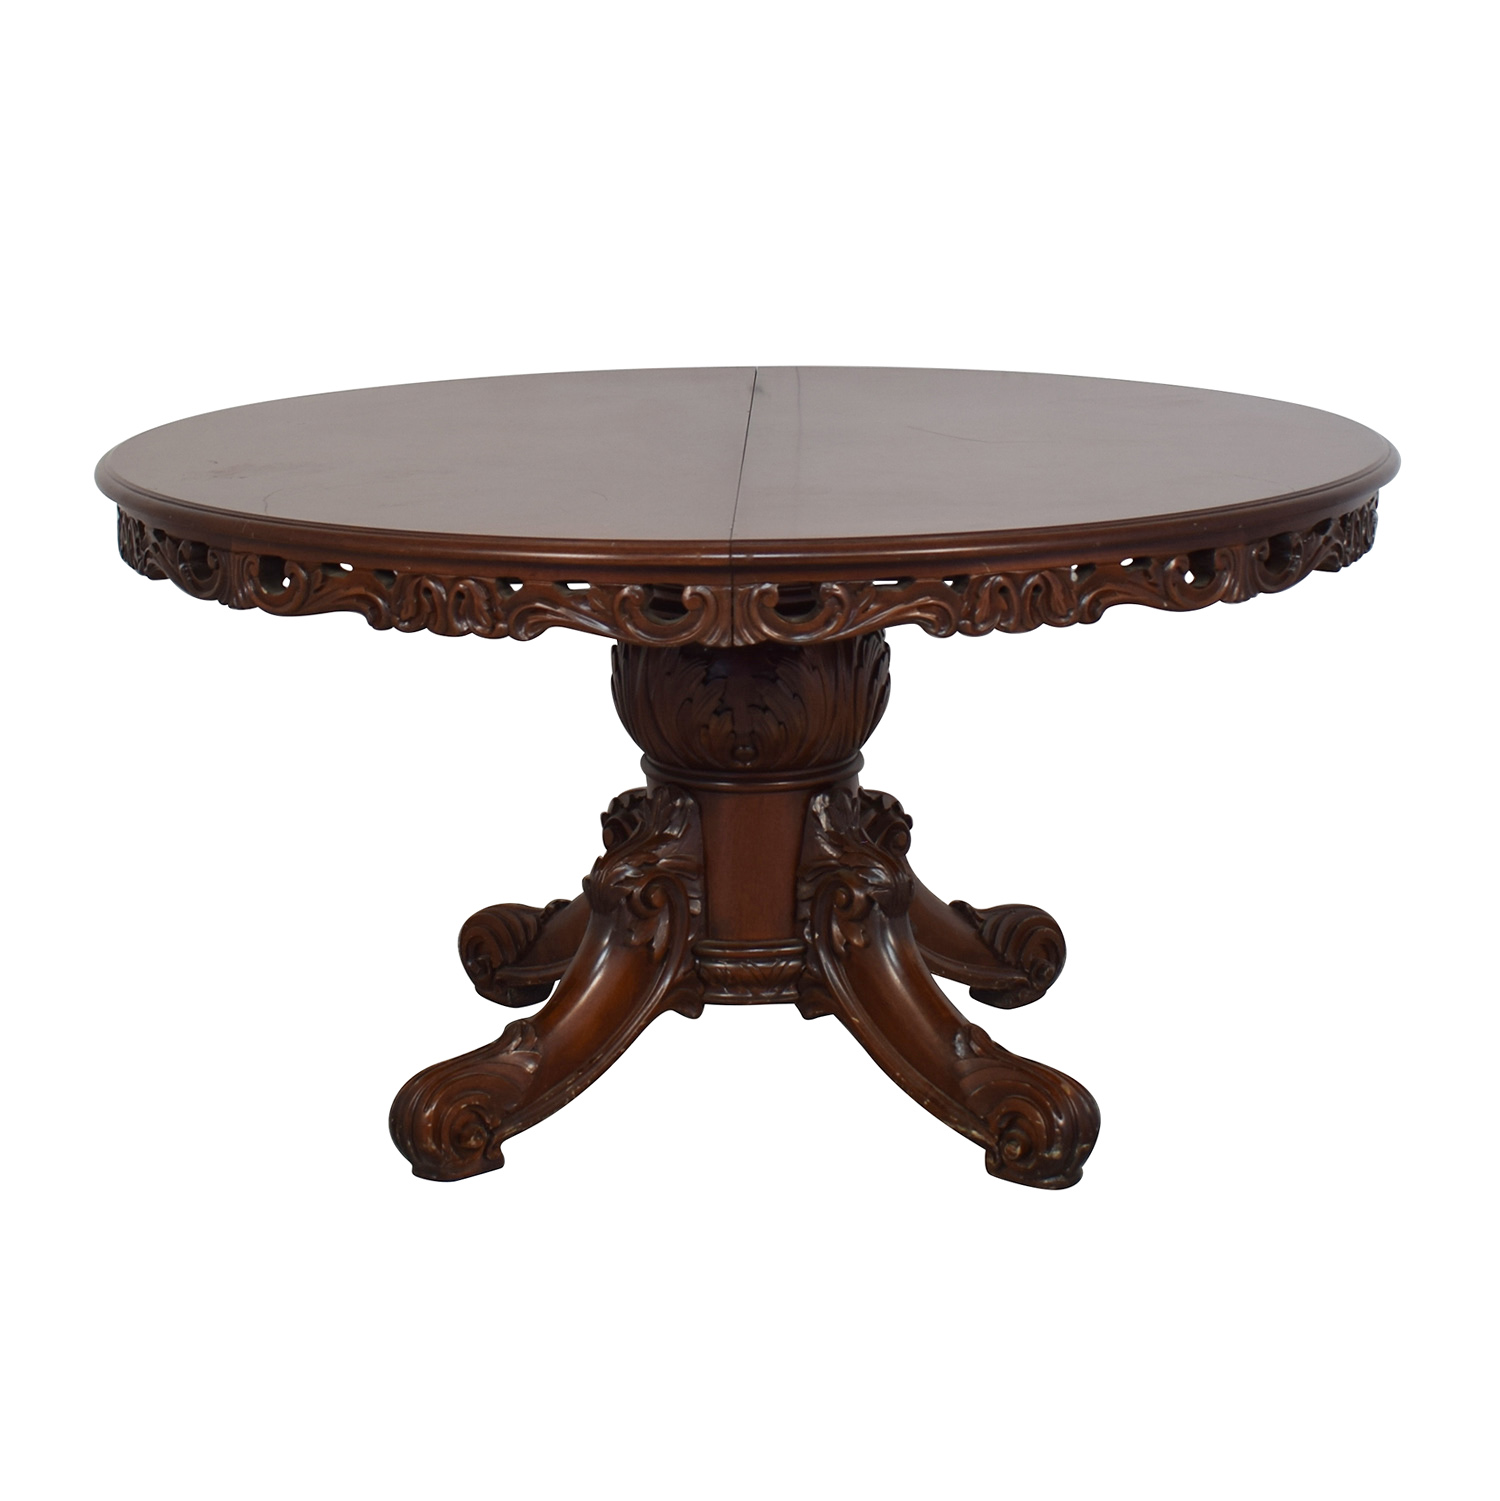 shop Tamer & Tamer Decorative Border Dining Table Tamer & Tamer Dinner Tables